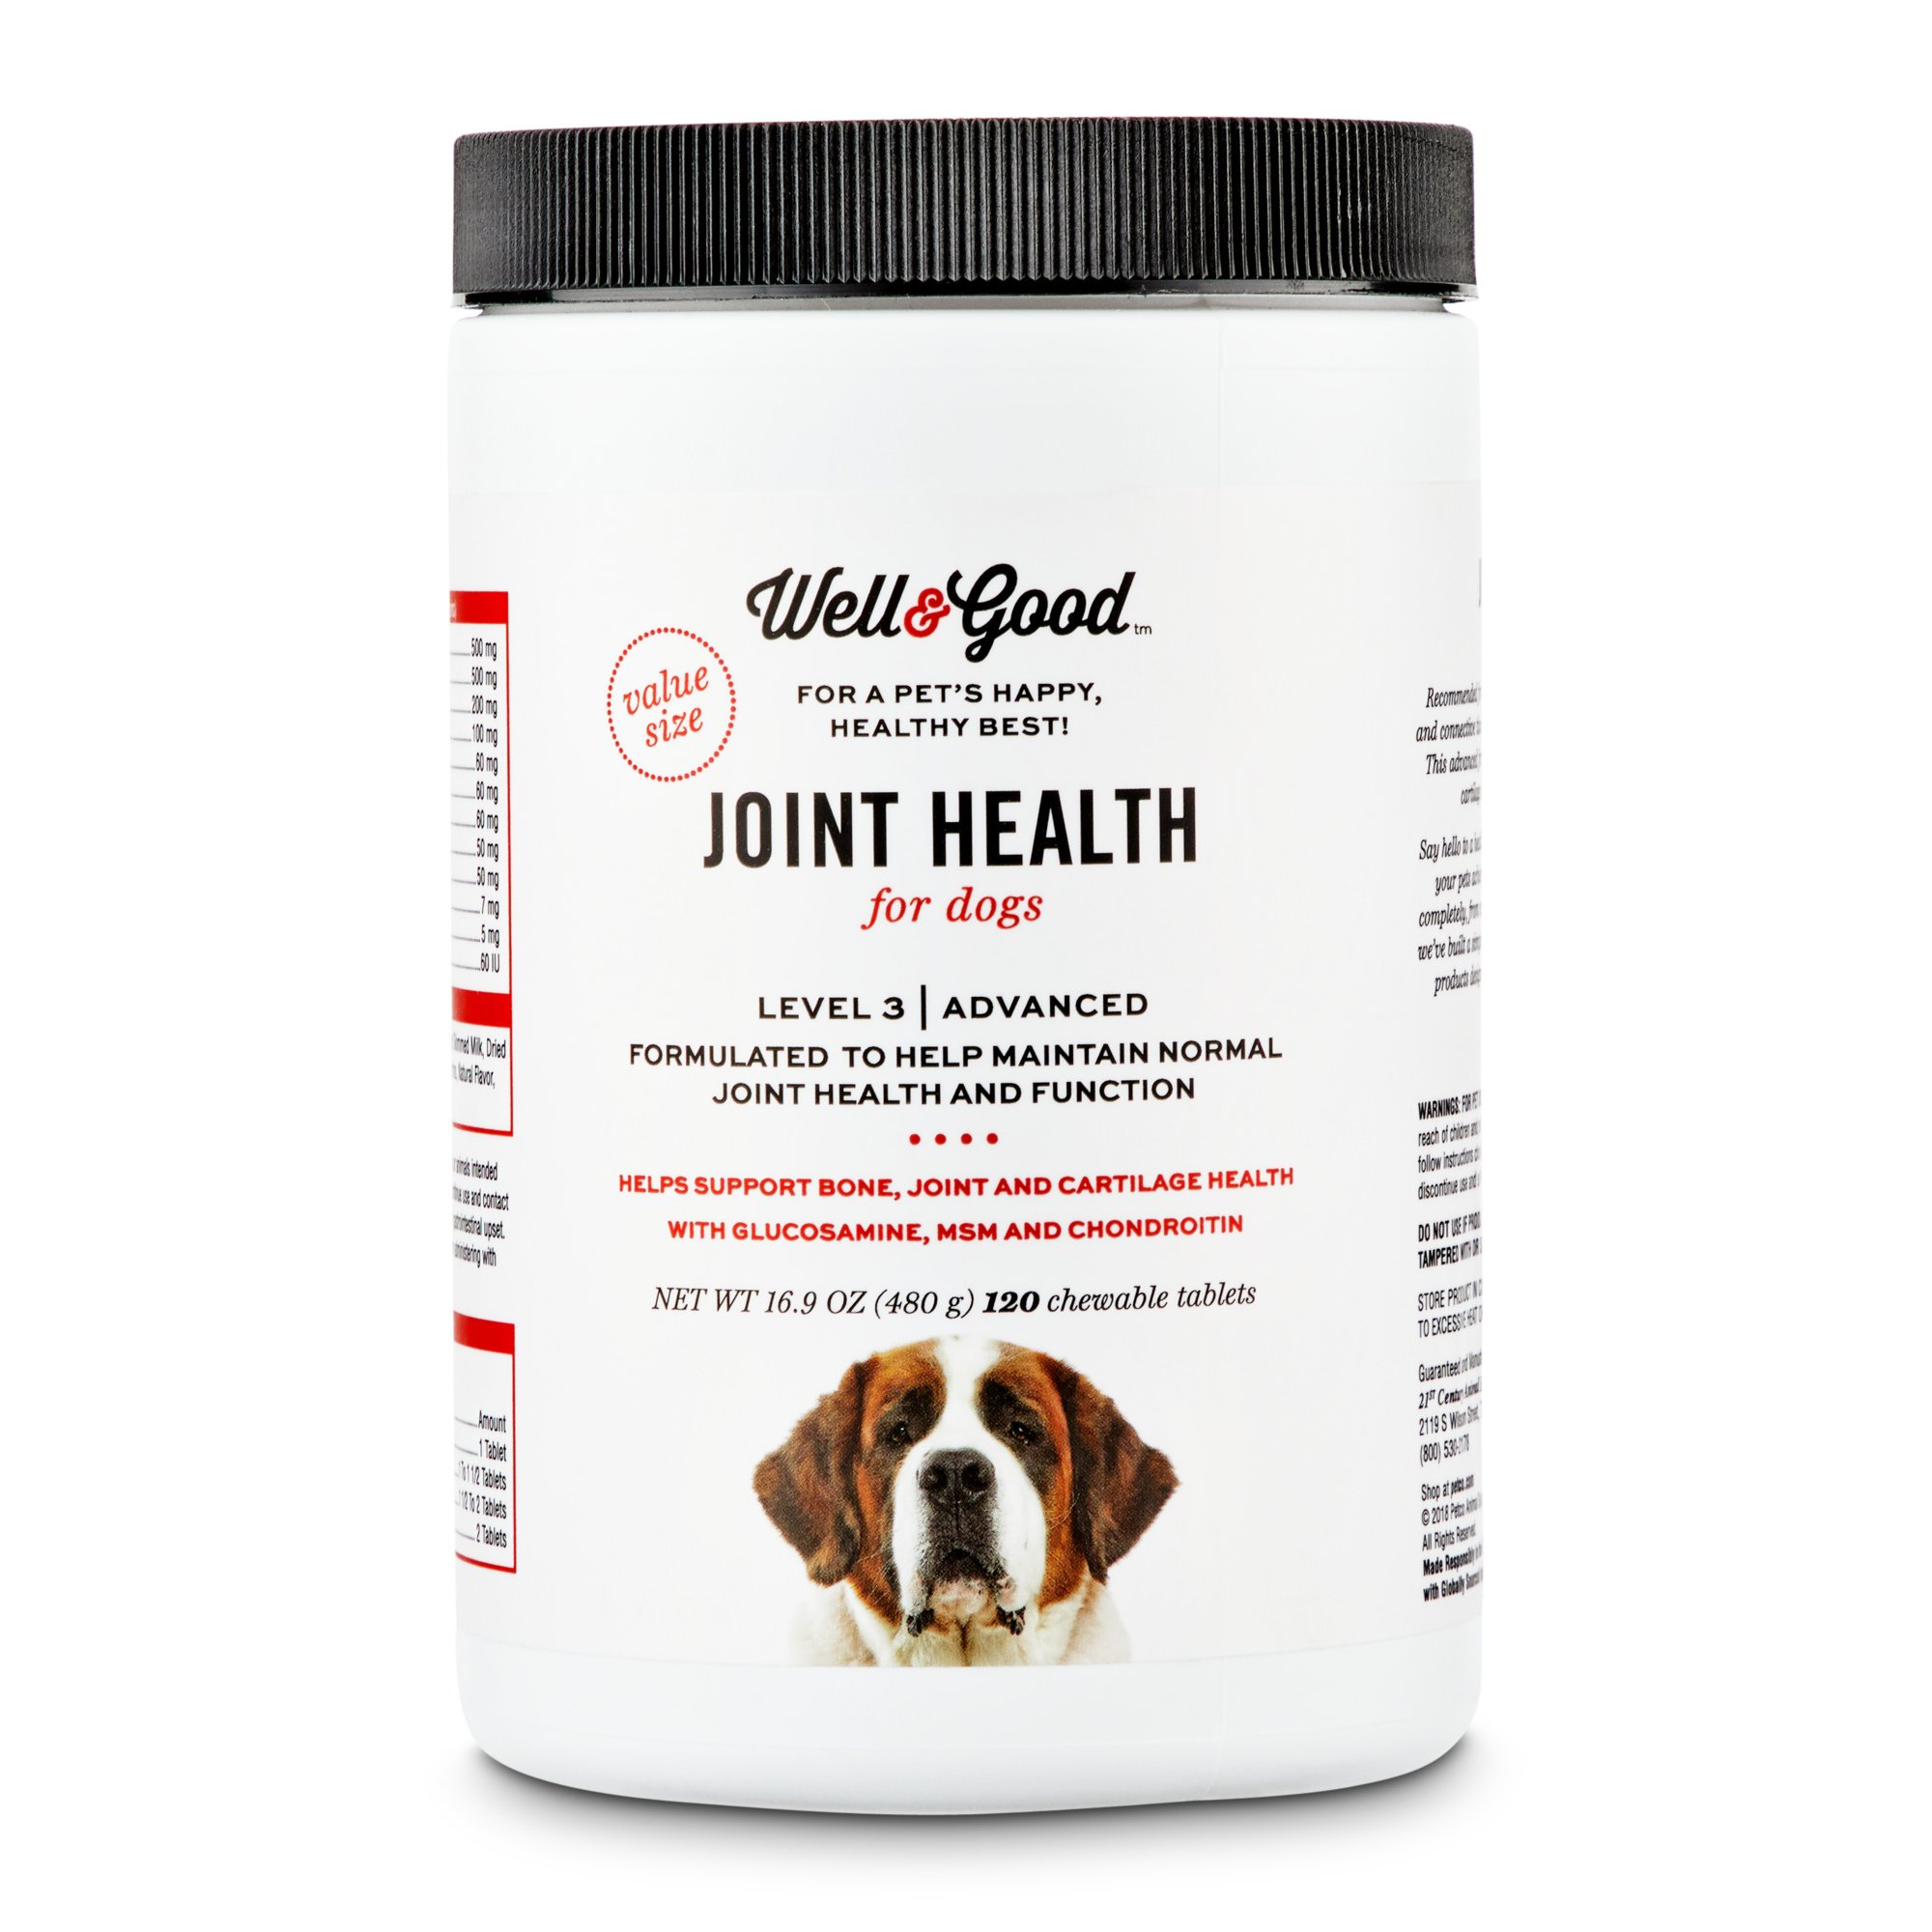 Well & Good Adult Level 3 Dog Joint Health Chewable Tablets   Petco